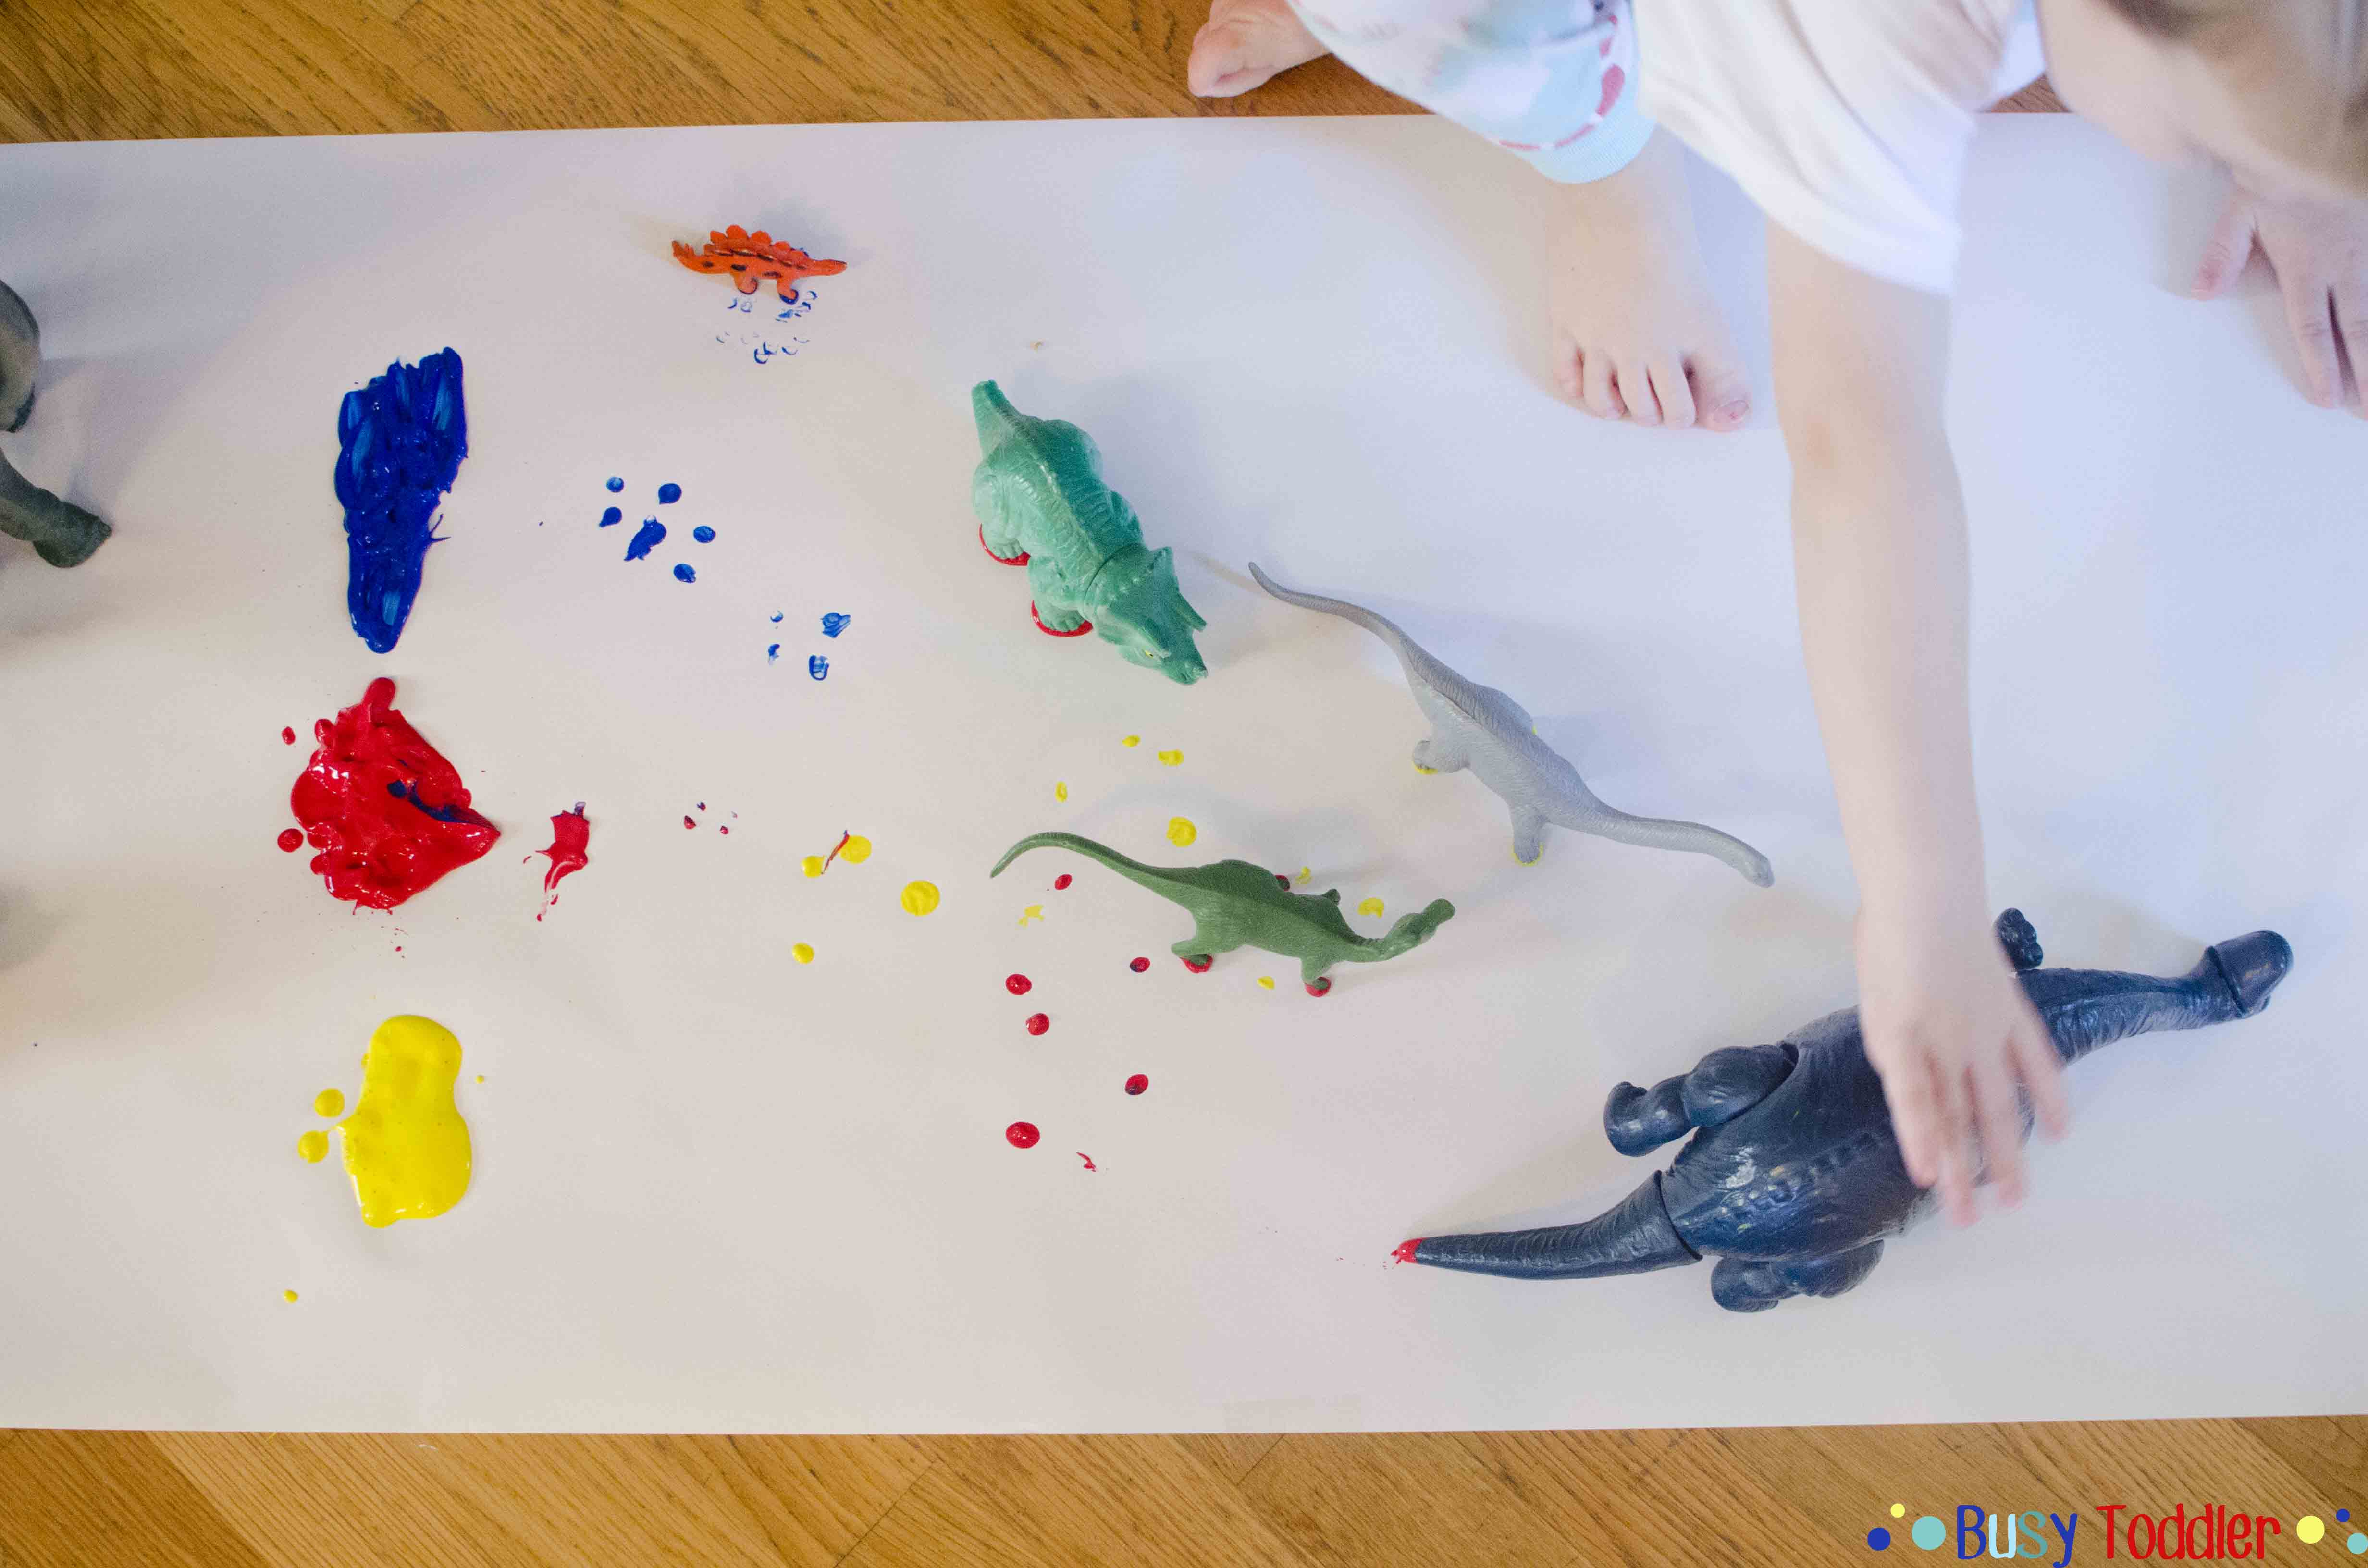 Dino Paint: A silly way to paint with toddlers